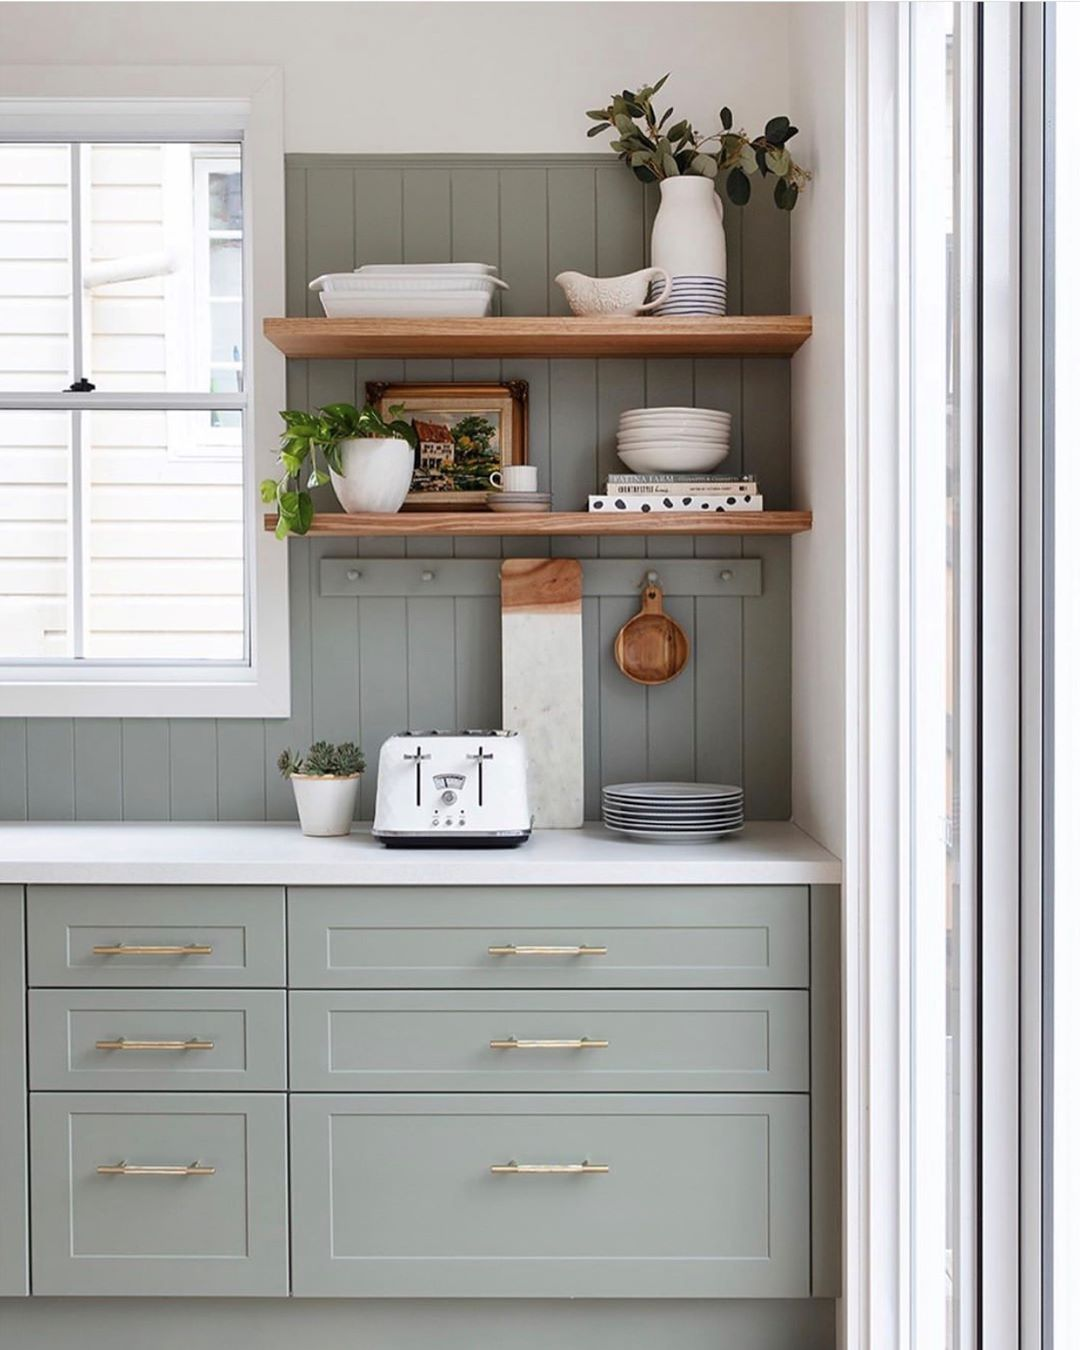 kaboodle kitchen on instagram we re still obsessing over this stunning kitchen b in 2020 on kaboodle kitchen bunnings drawers id=55831